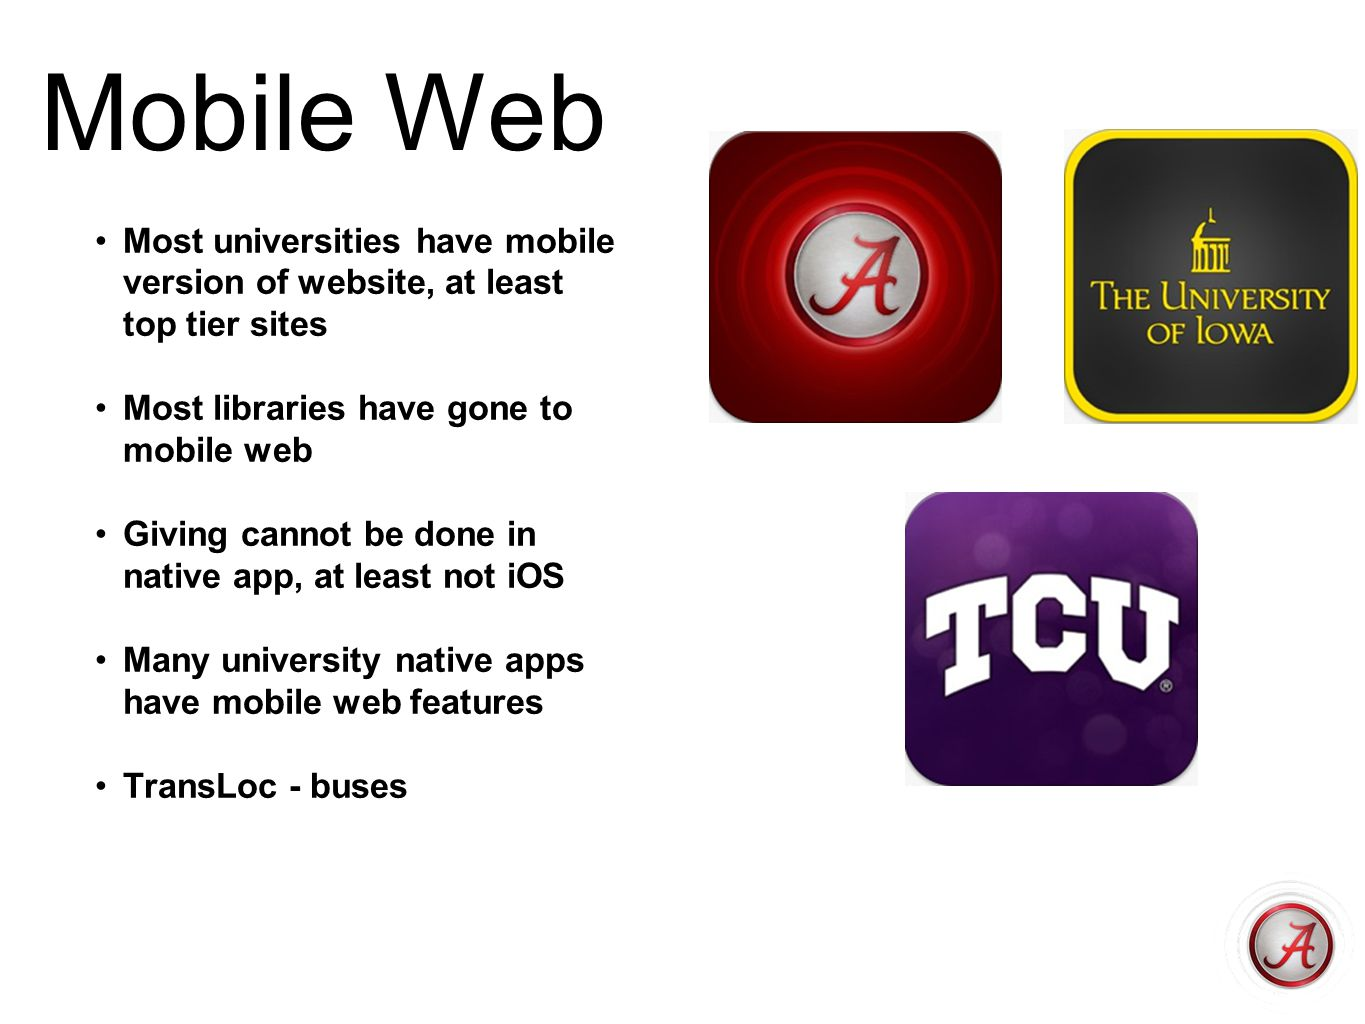 Mobile Web Most universities have mobile version of website, at least top tier sites. Most libraries have gone to mobile web.